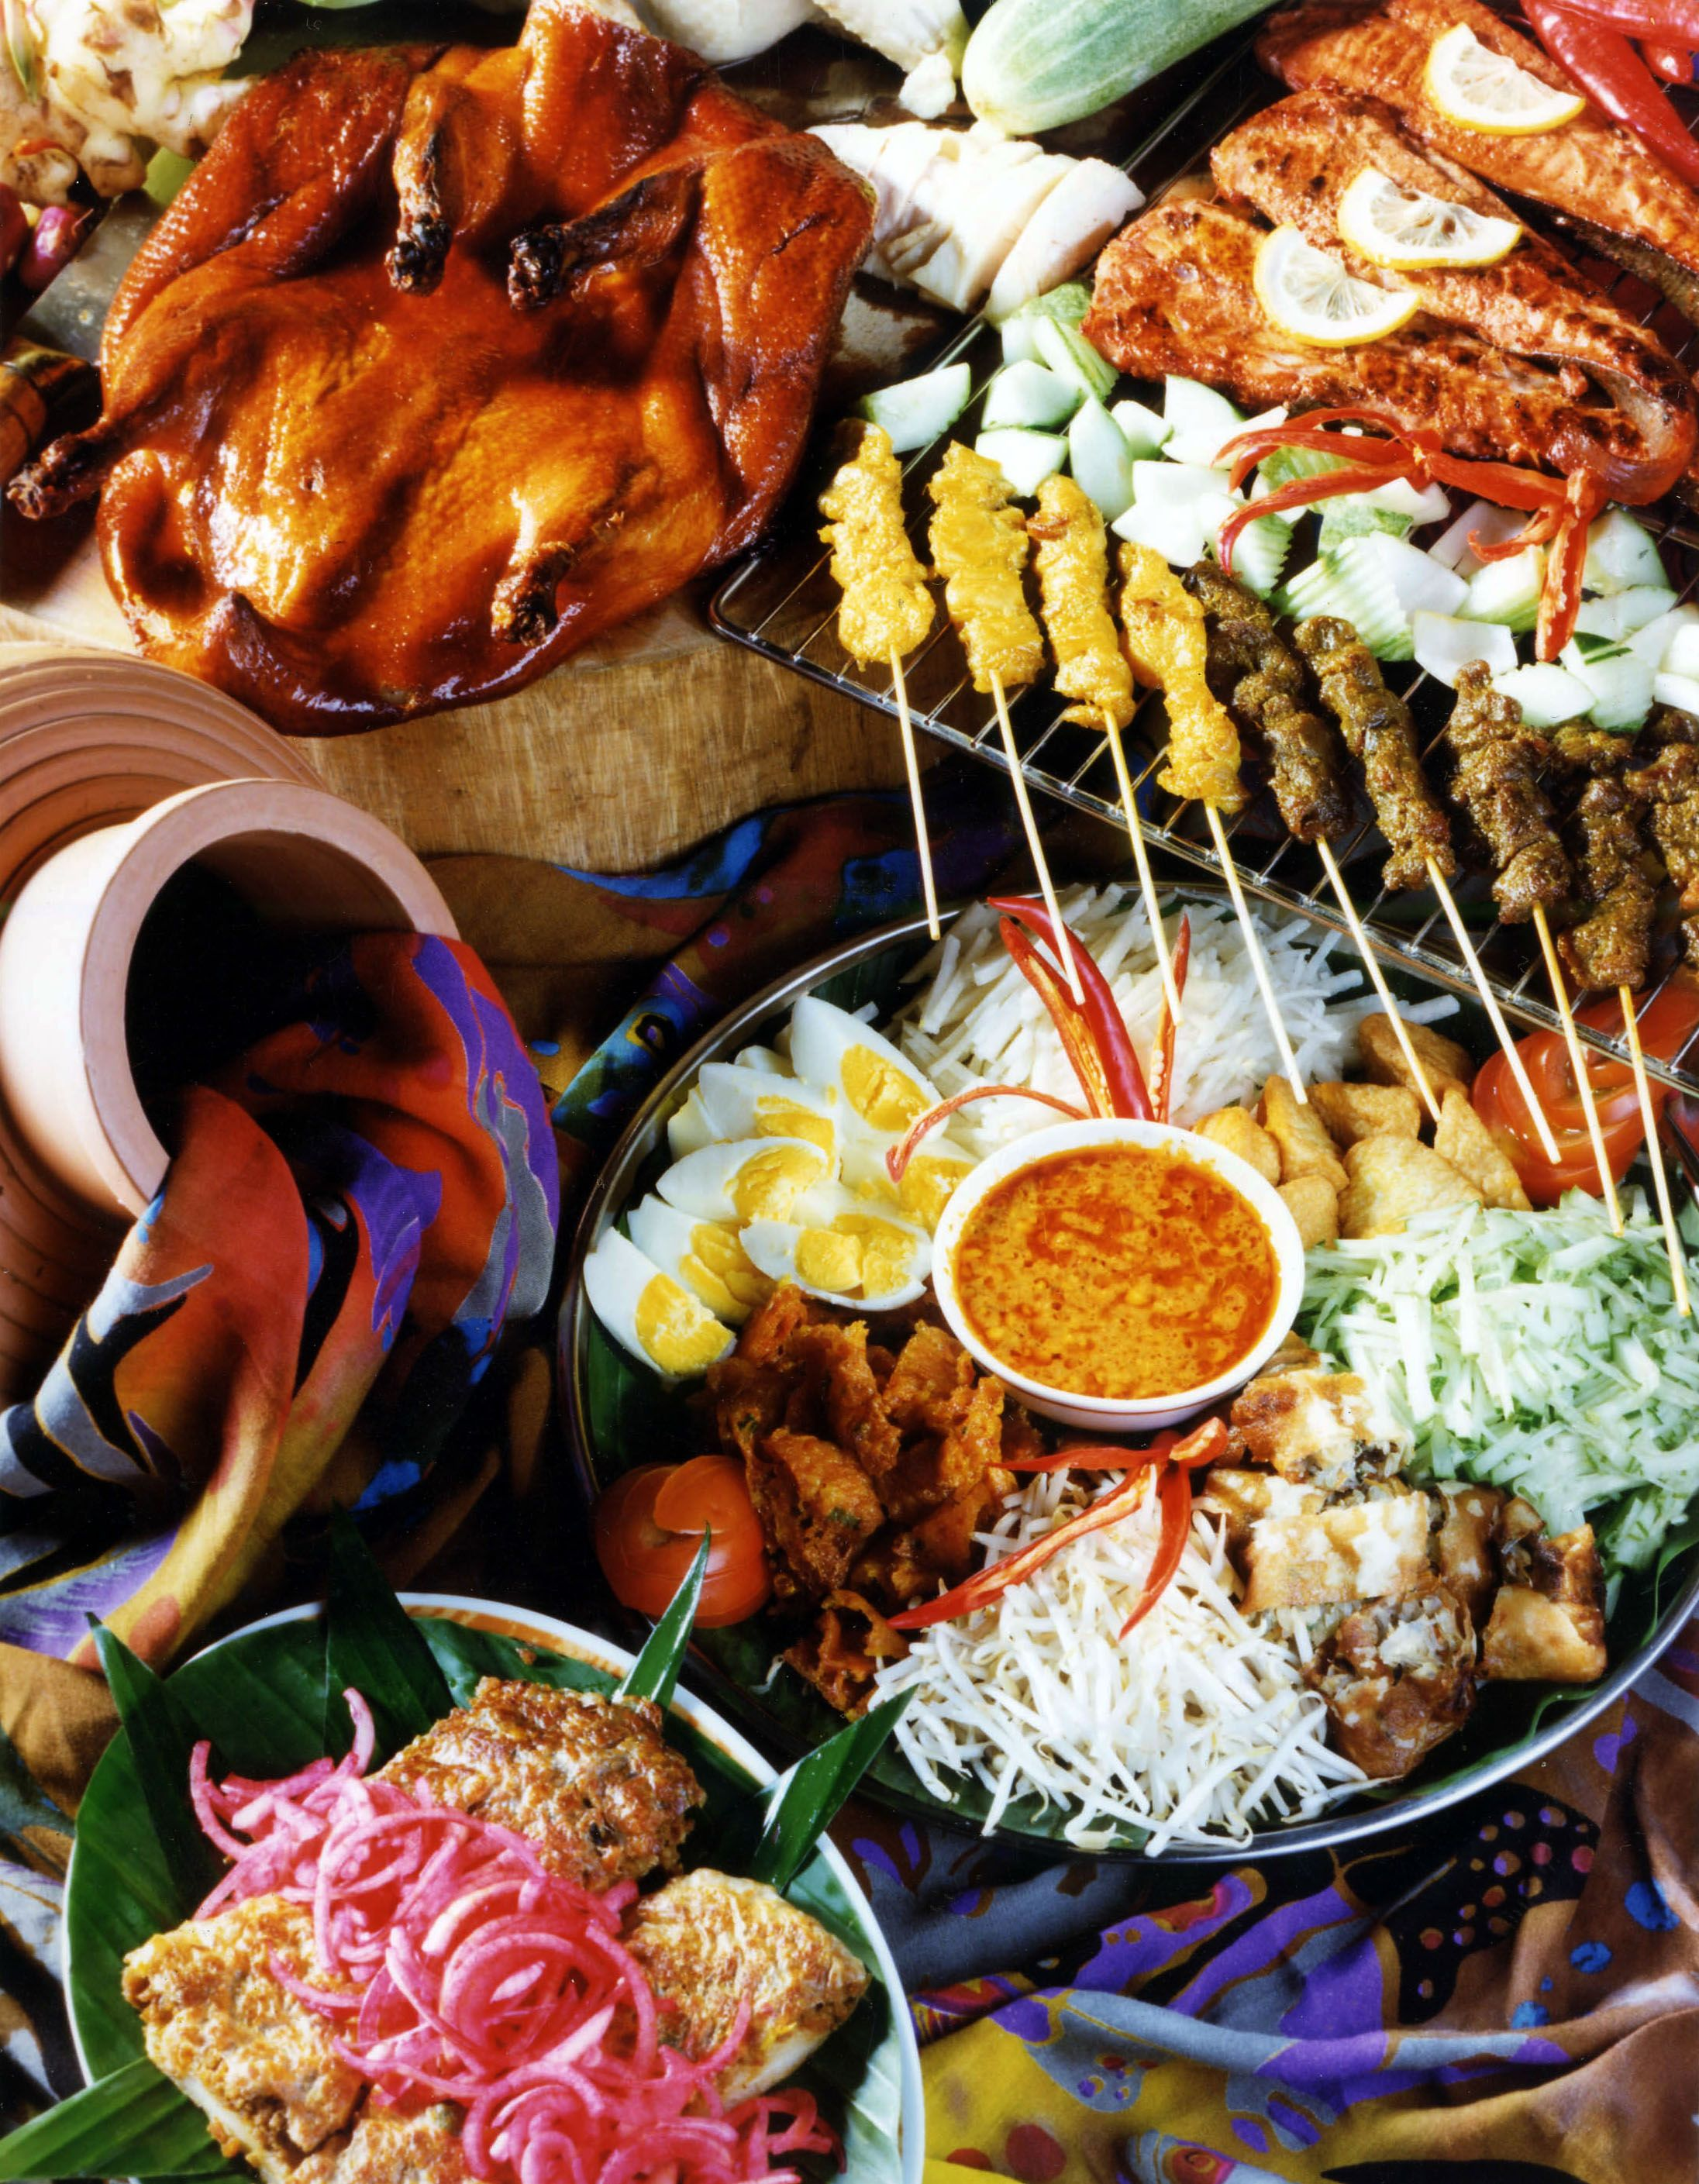 This Malaysian cuisine looks ridiculously delicious!